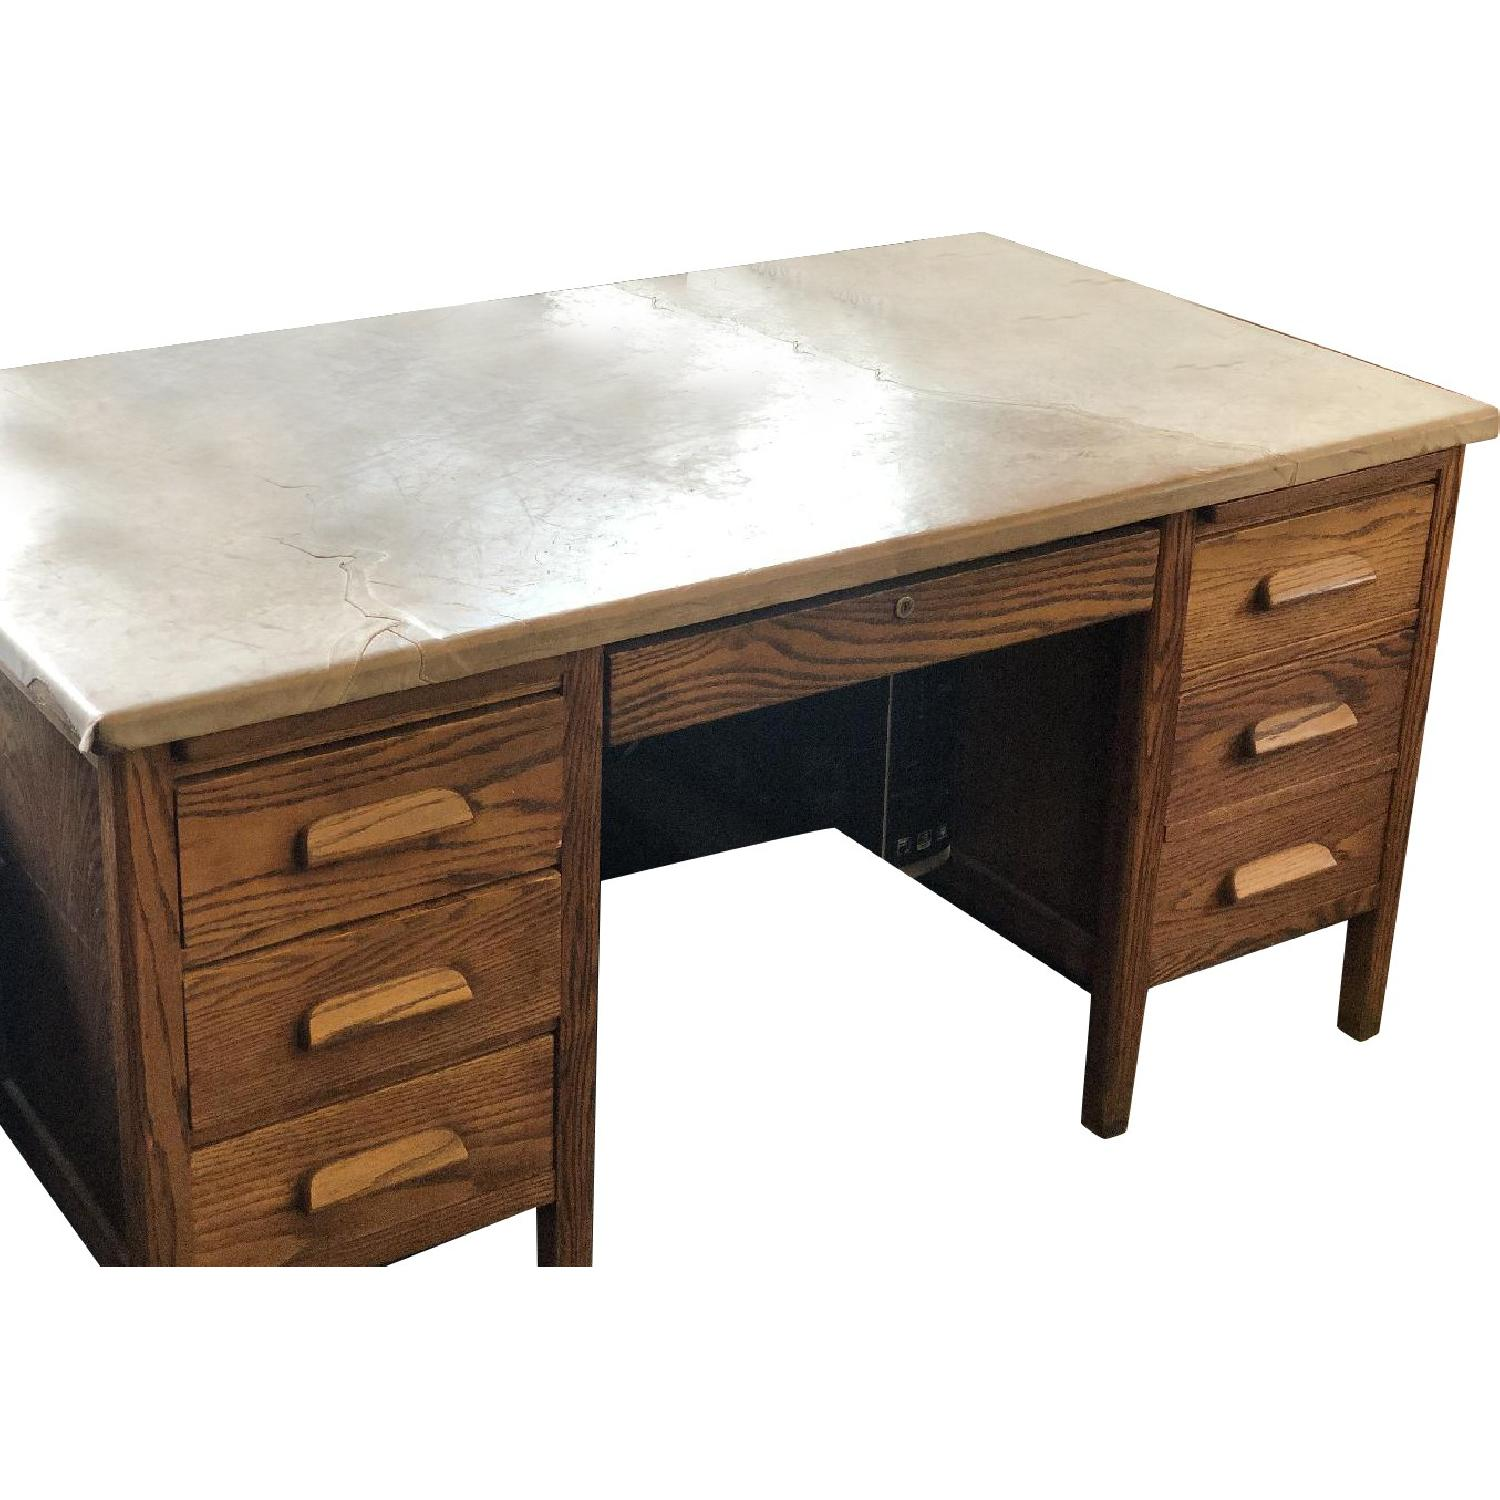 Antique Mission Style Desk w/ Distressed Calf Skin Covering